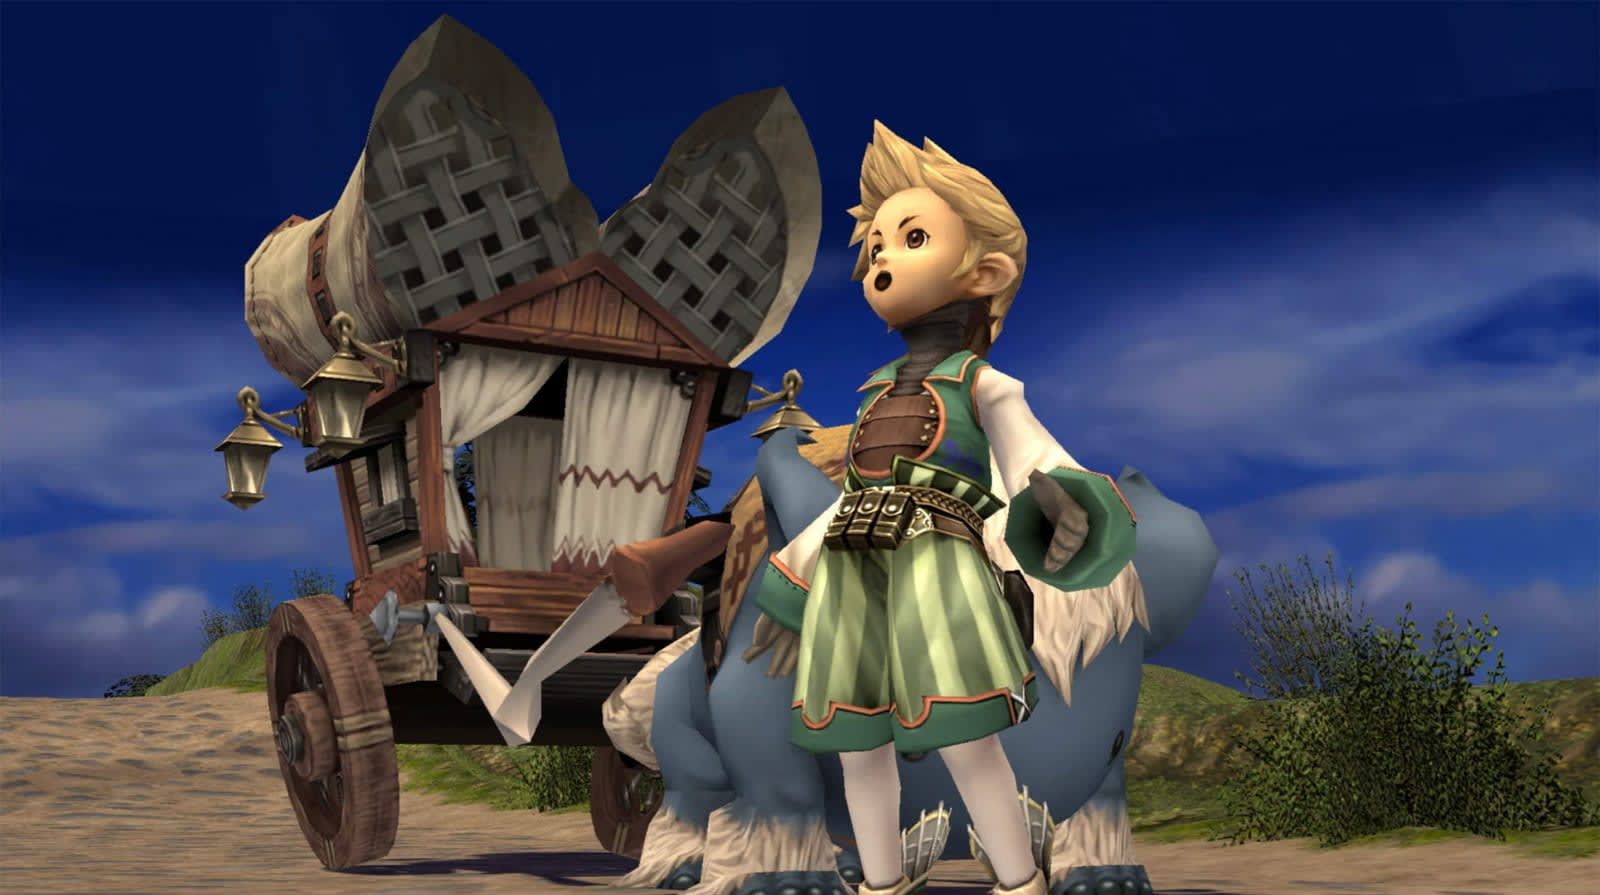 Final Fantasy Crystal Chronicles' remaster arrives January